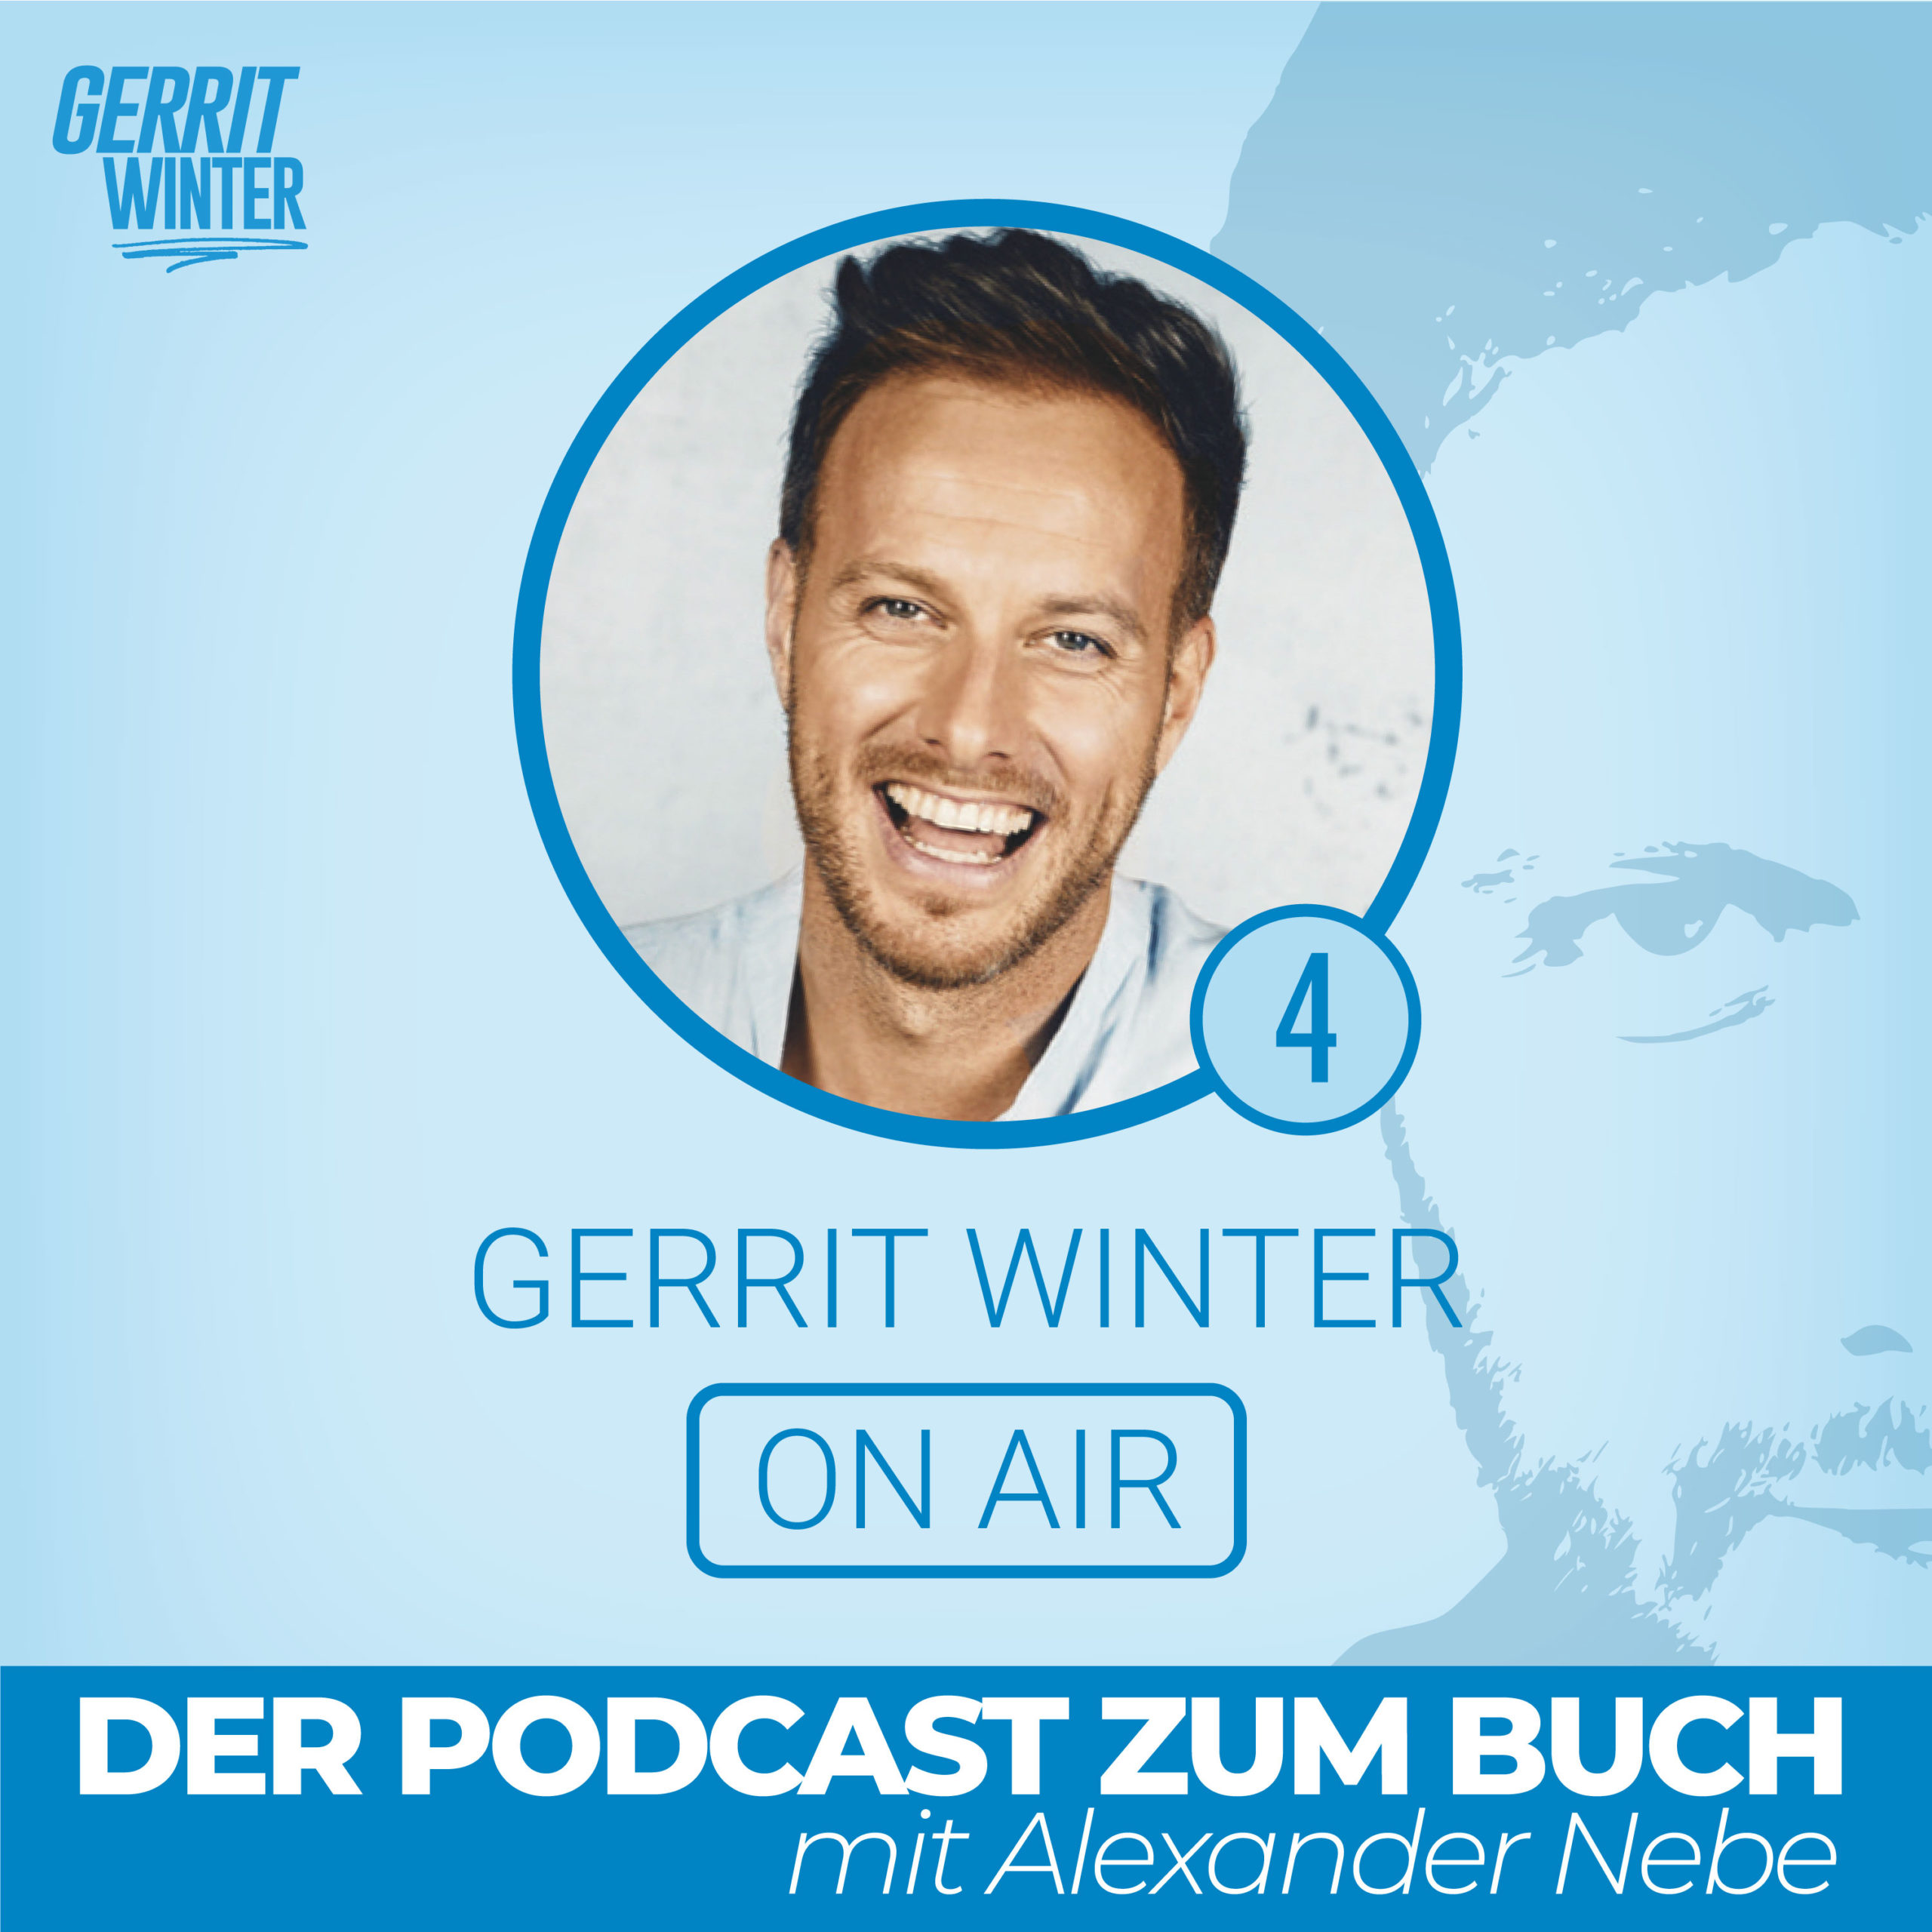 Gerrit Winters Podcast mit Alexander Nebe - Journalist und Podcaster